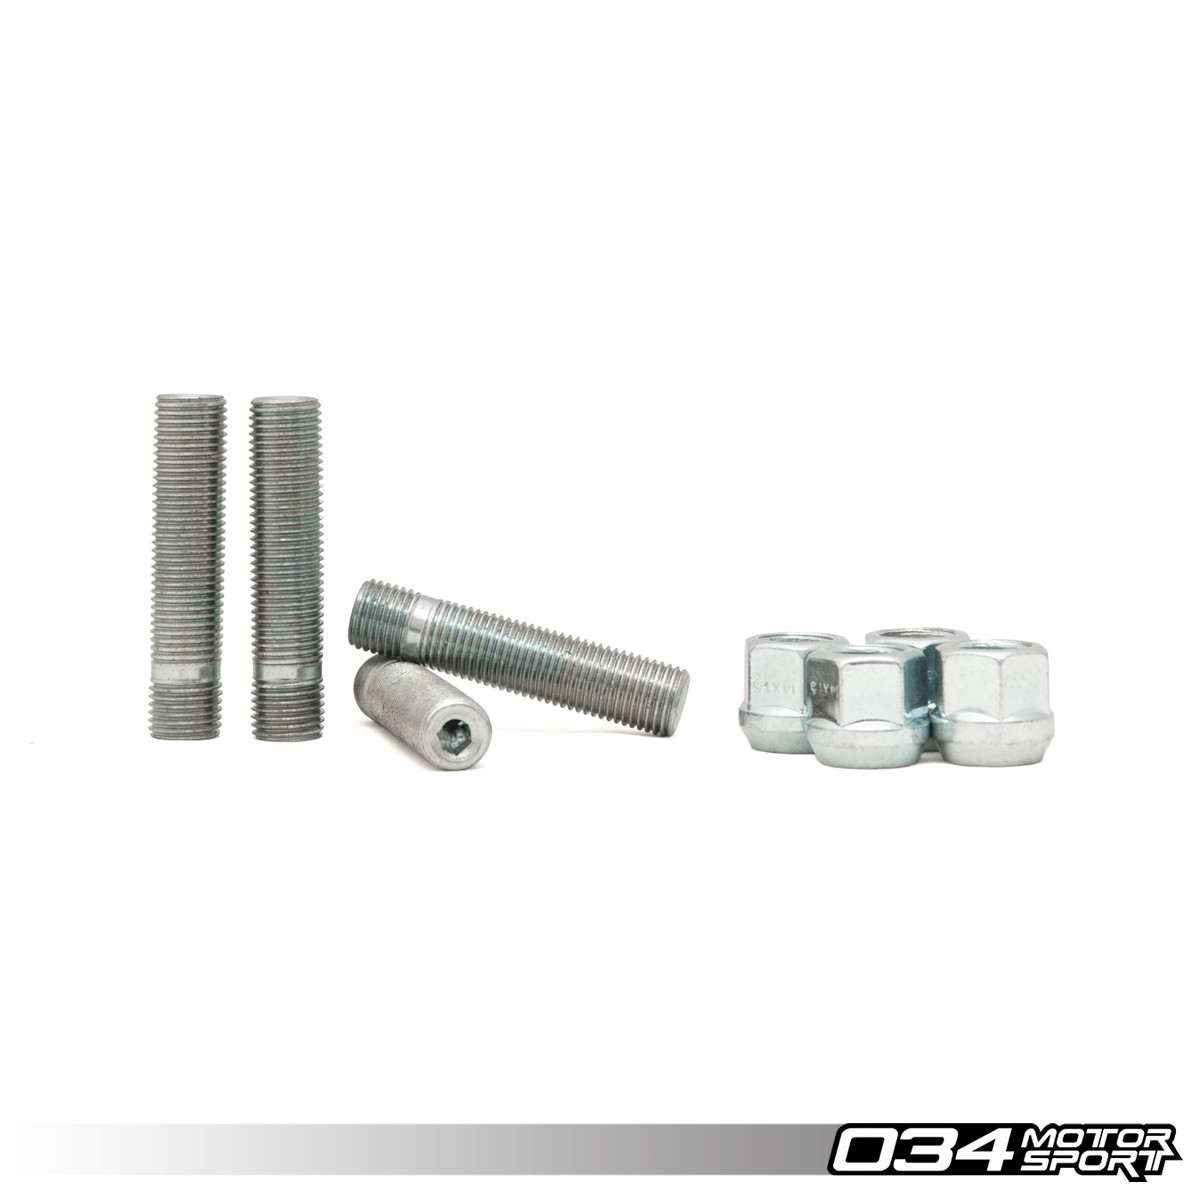 Wheel Stud and Nut Kit, M14x1.5, Cone Seat | 034-604-6000